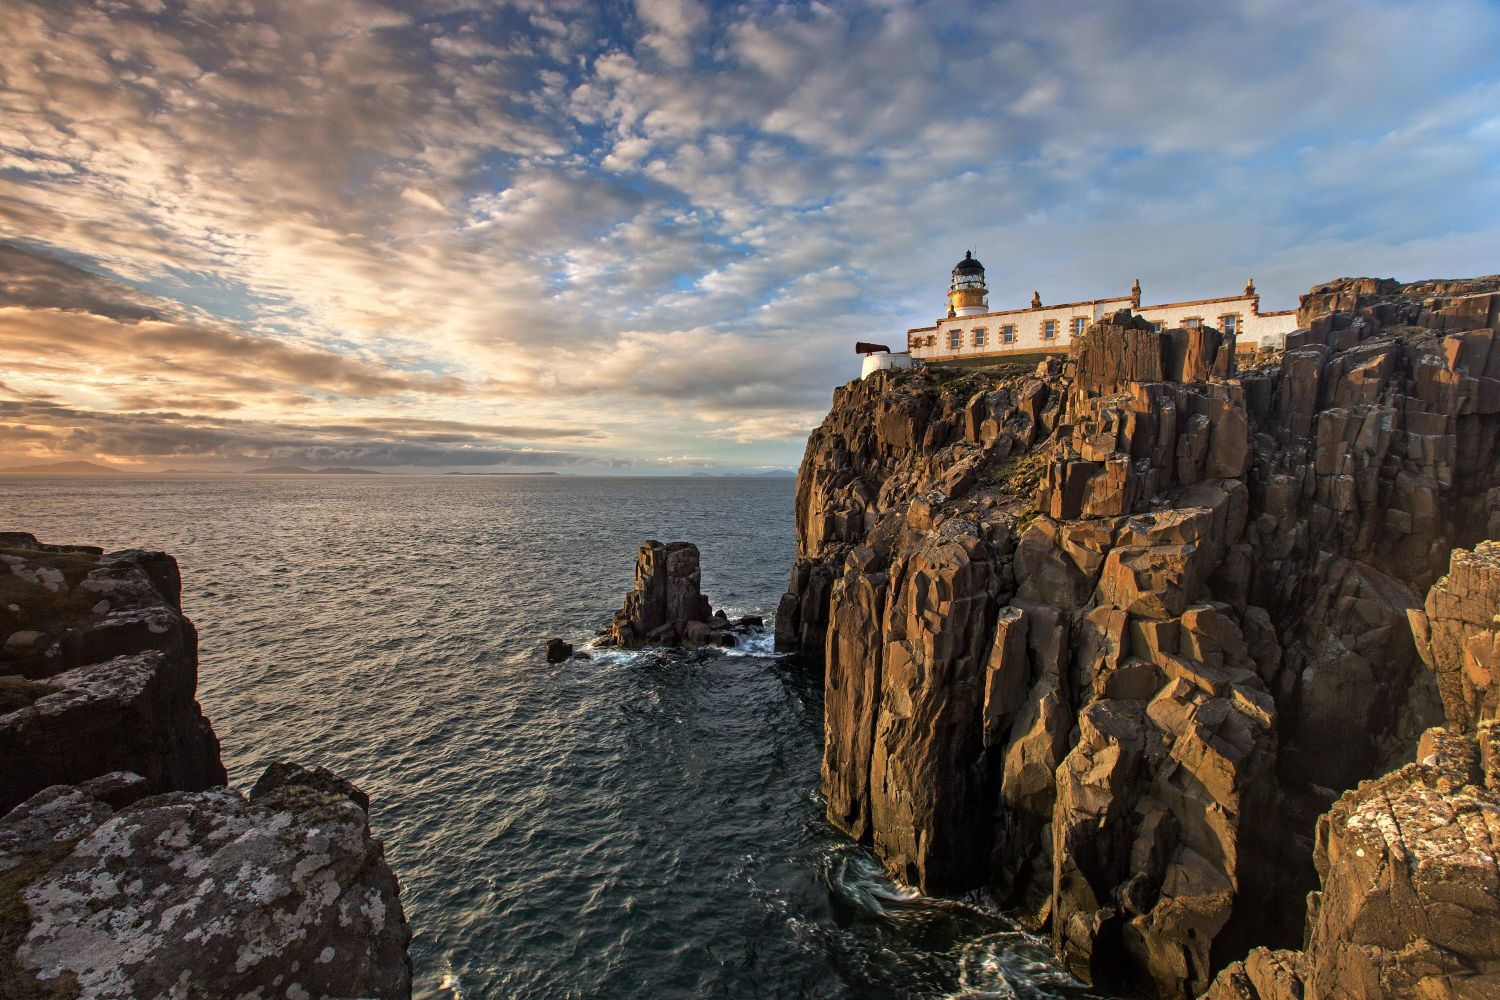 Sunset at Neist Point lighthouse on Isle of Skye's most westerly peninsula